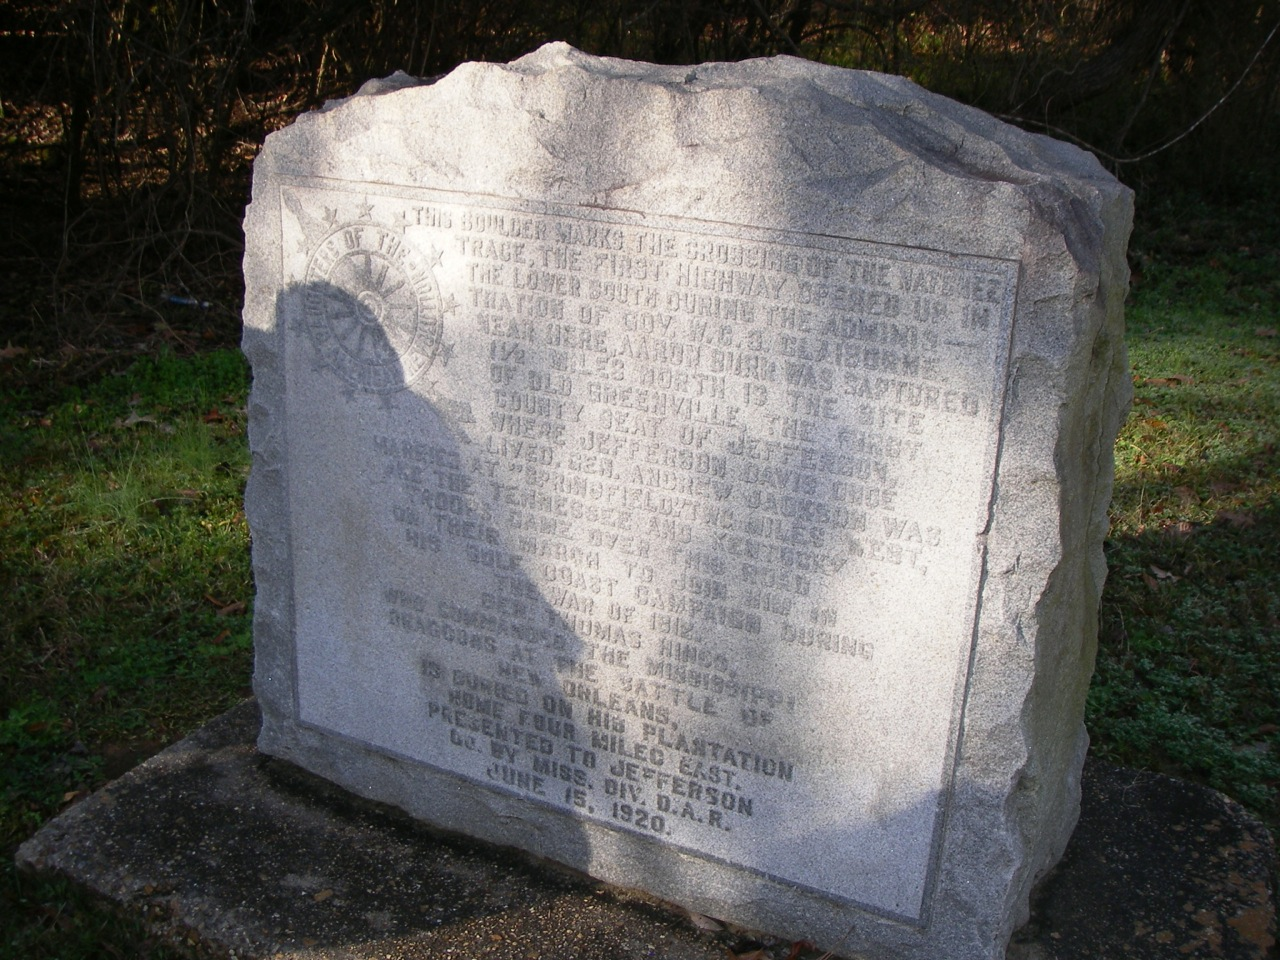 Monument commemorating the location of the original Natchez Trace Trail (Potkopinu). It is located alongside Highway 553 close to the north trailhead. It was installed by the Daughters of the American Revolution (DAR) on June 15, 1920.